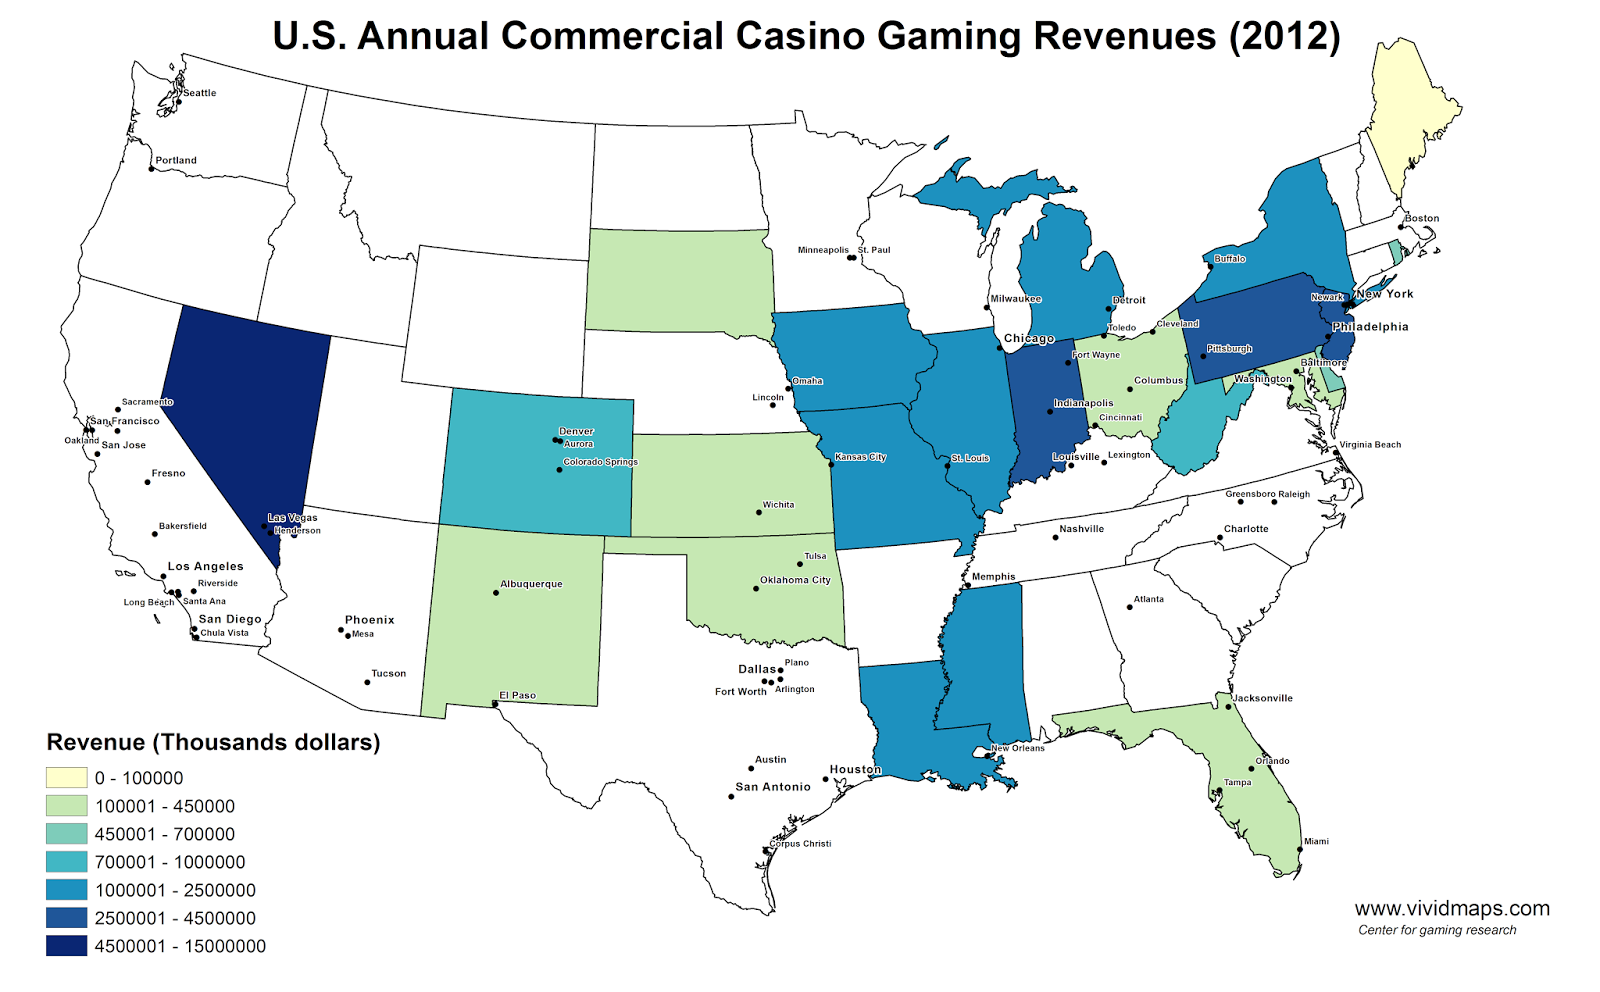 U.S. Annual Commercial Casino Gaming Revenues (2012)